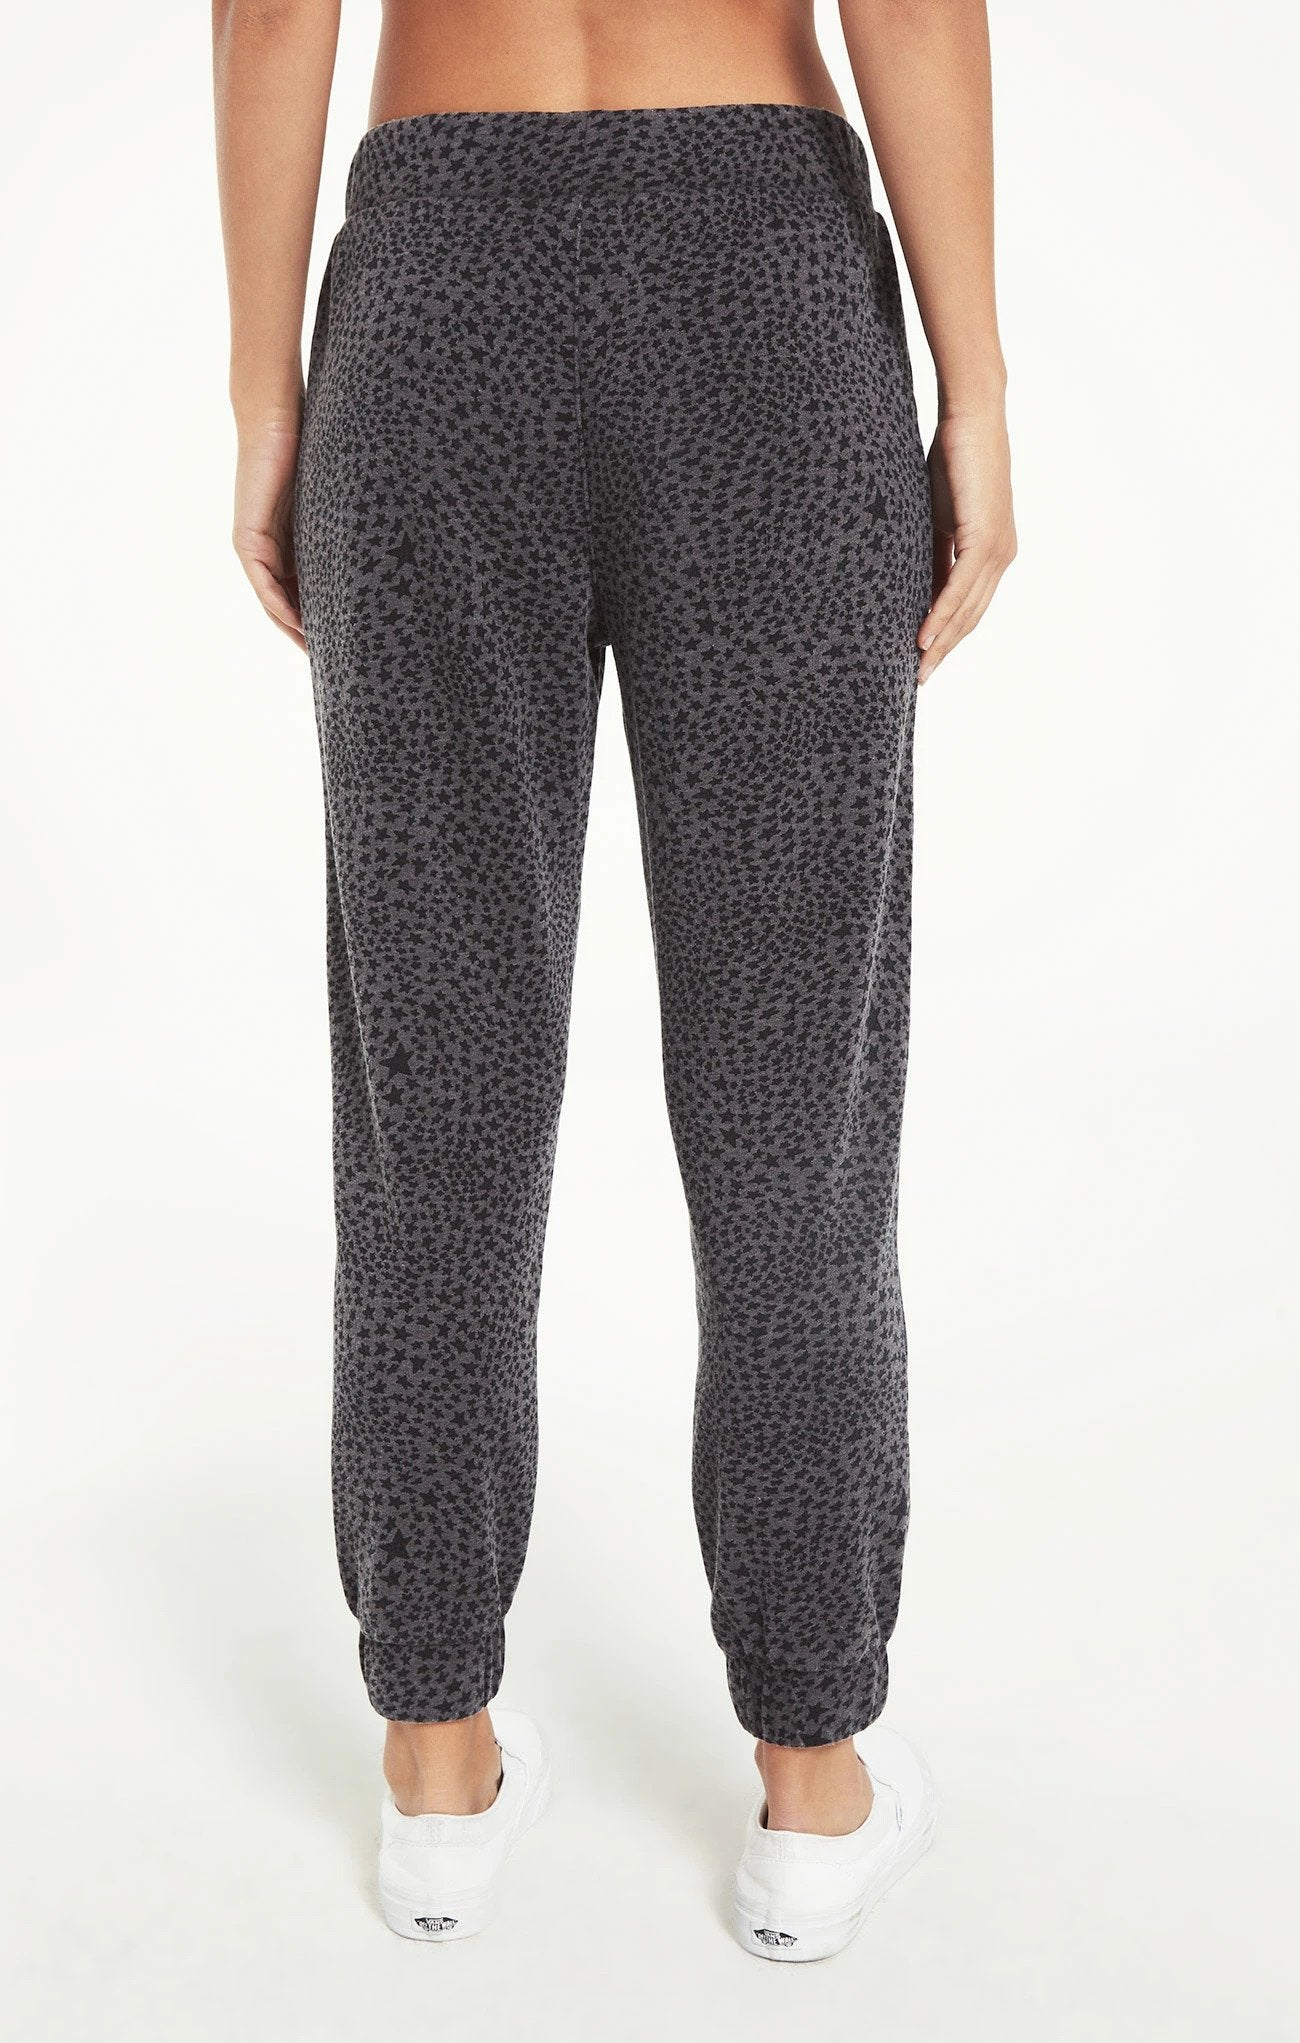 Cadence Stardust Jogger in Charcoal